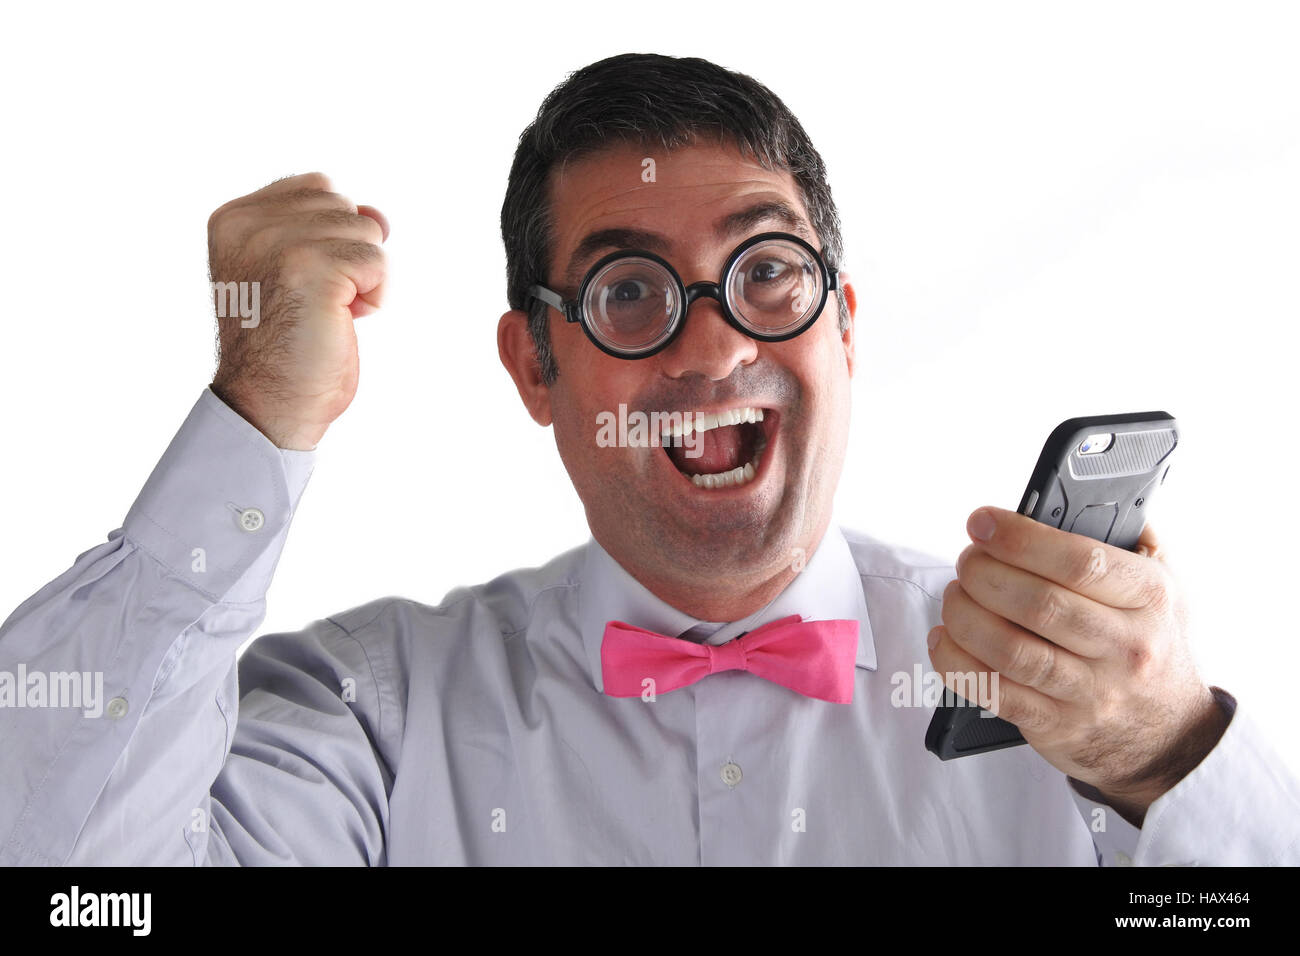 Happy Geeky man receives  an exciting message or phone call. Communication concept. Real people copy space - Stock Image